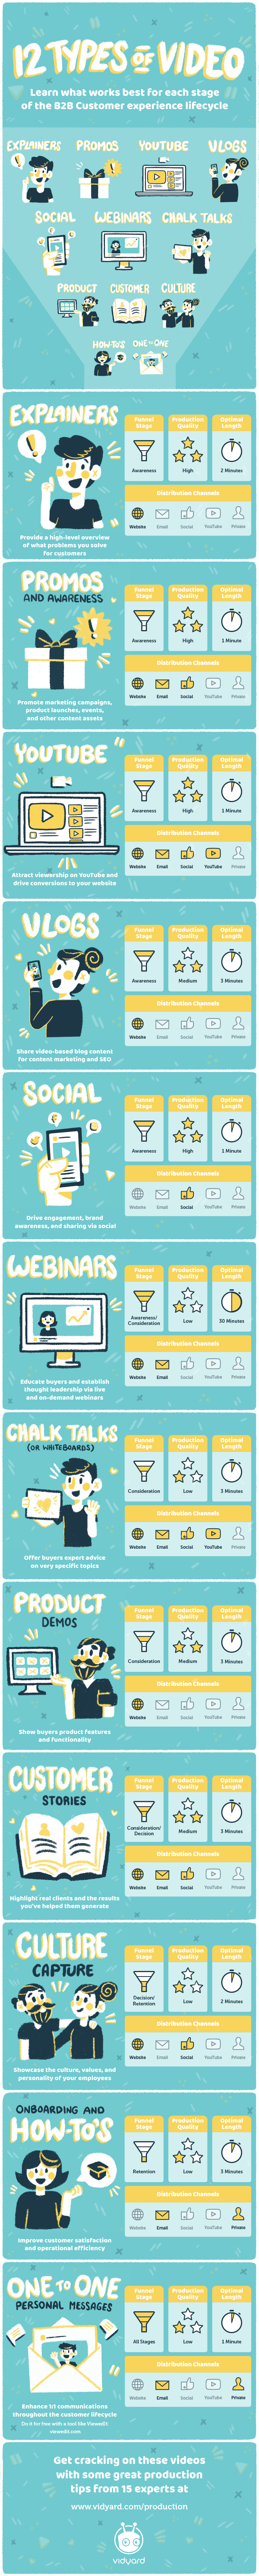 [Infographic] The 12 Types of Video Every B2B Business Needs Growth Marketing